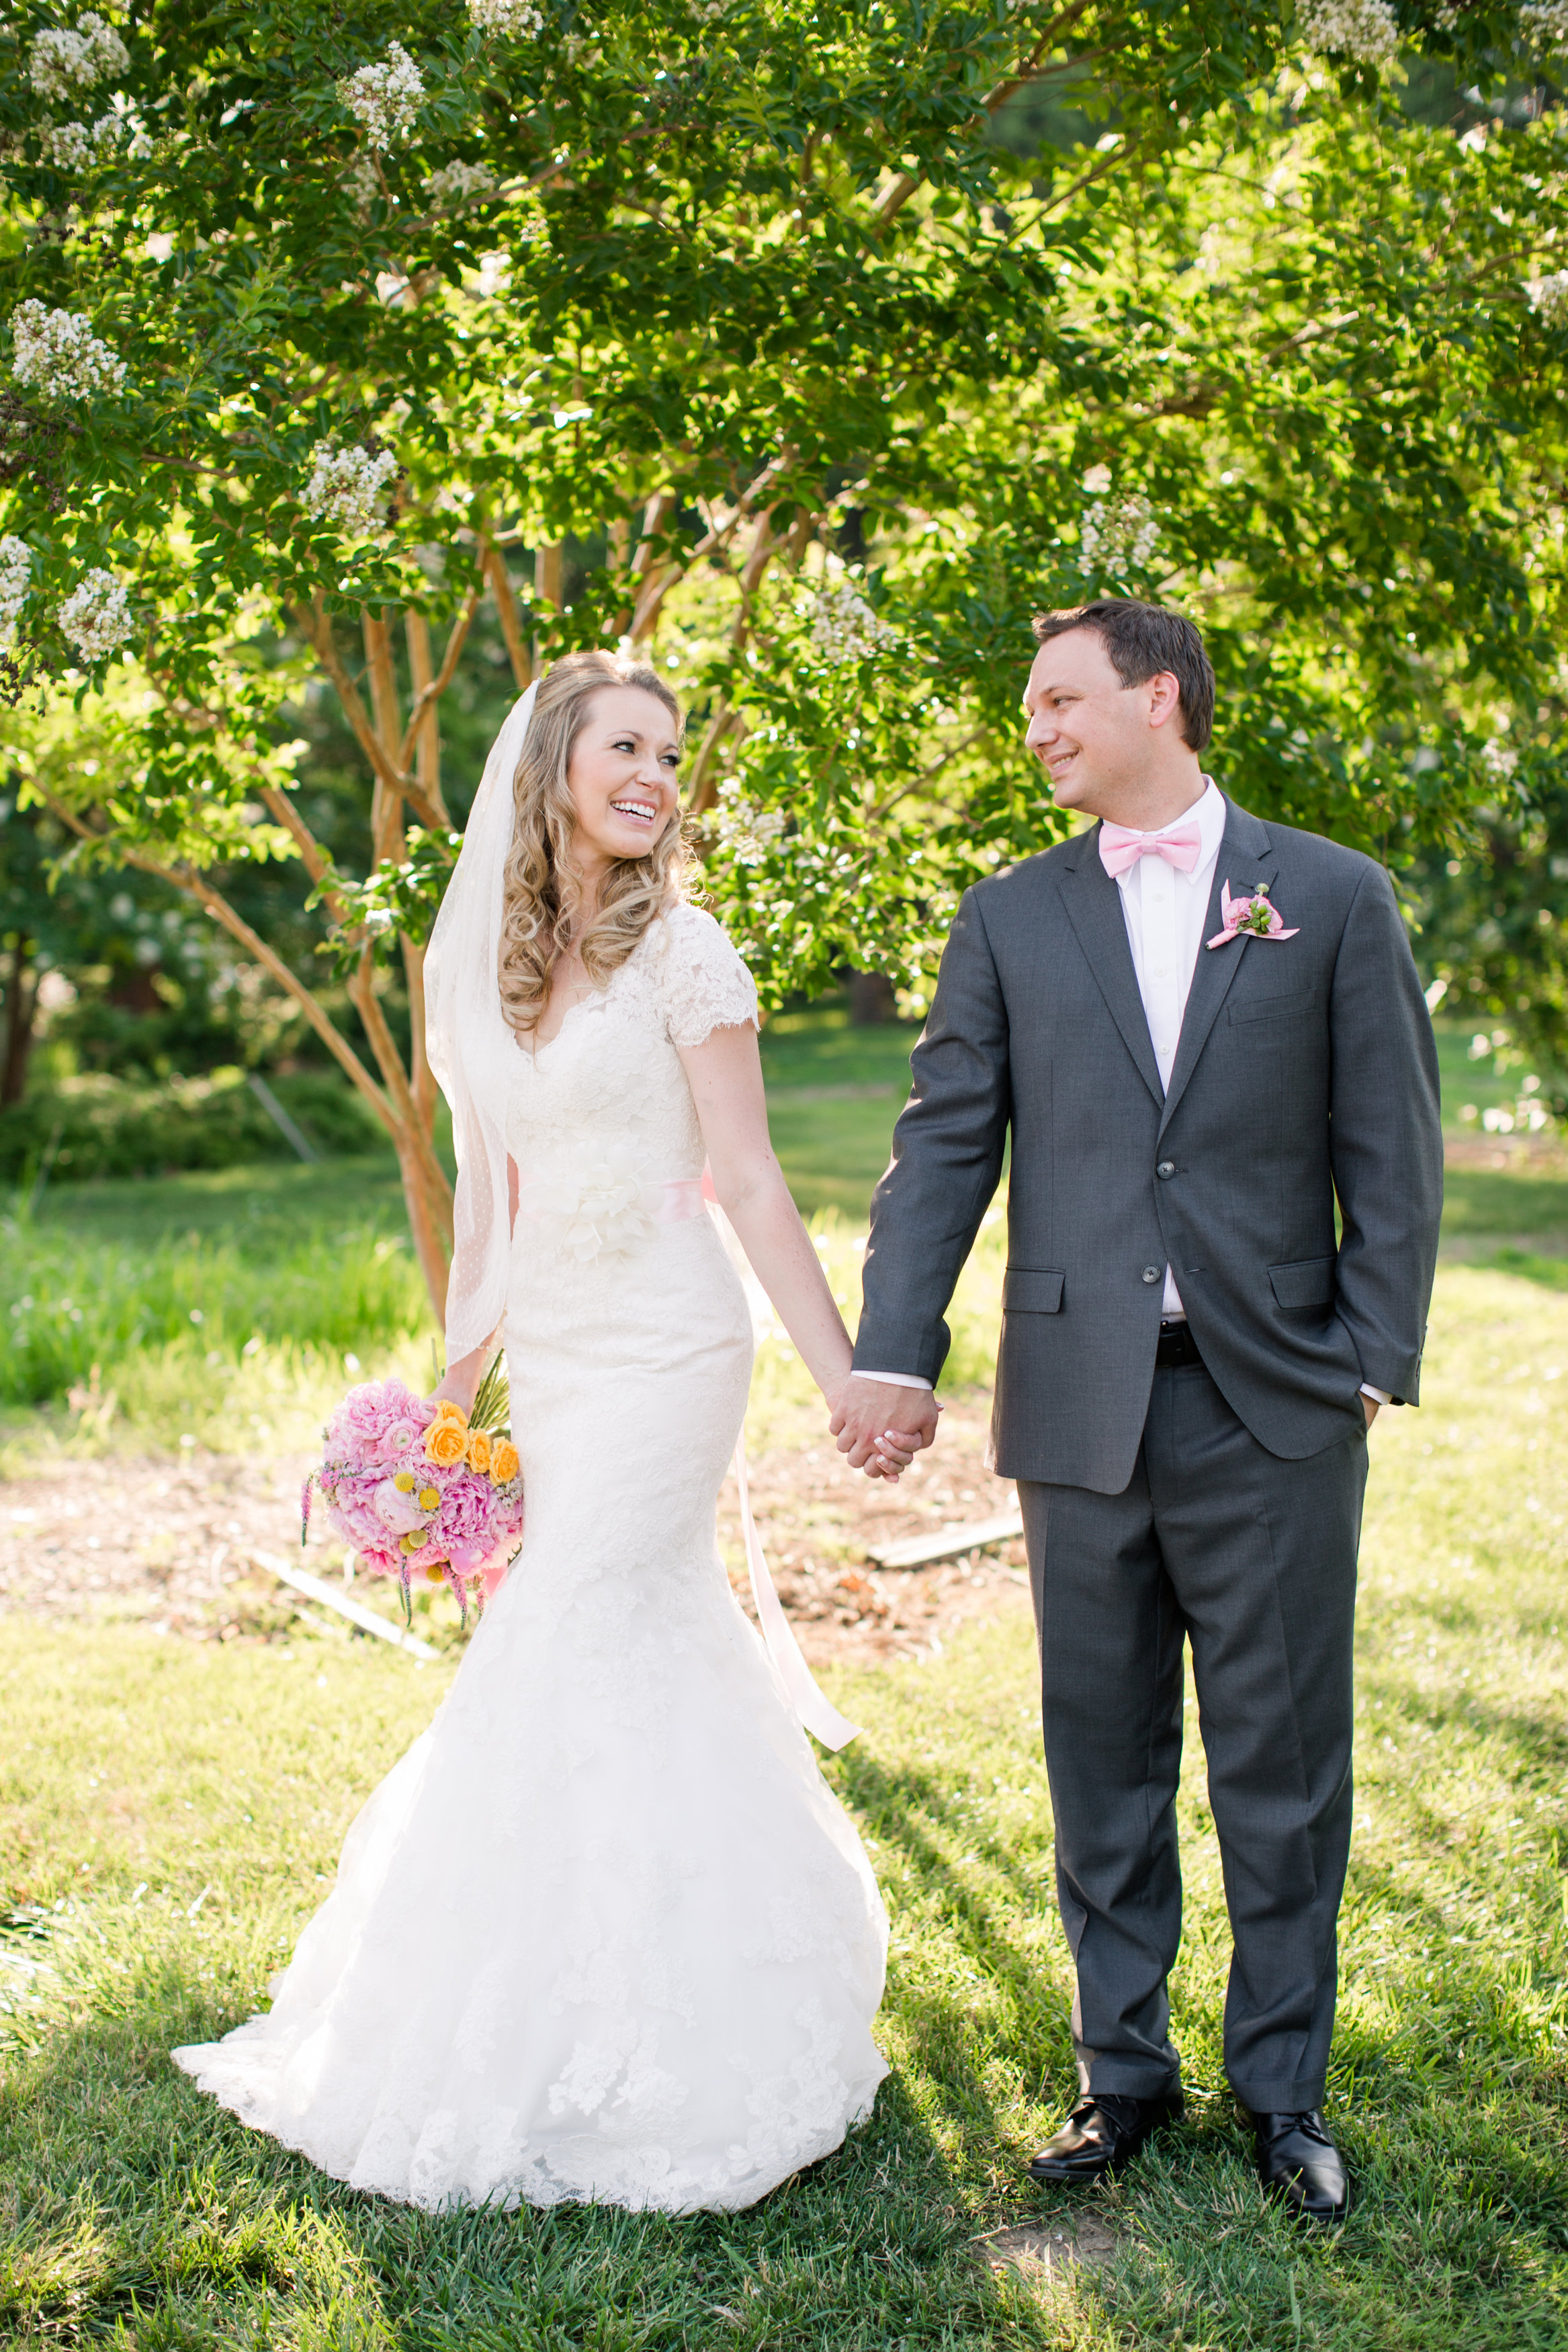 View More: http://katelynjames.pass.us/justin-and-brooke-wedding